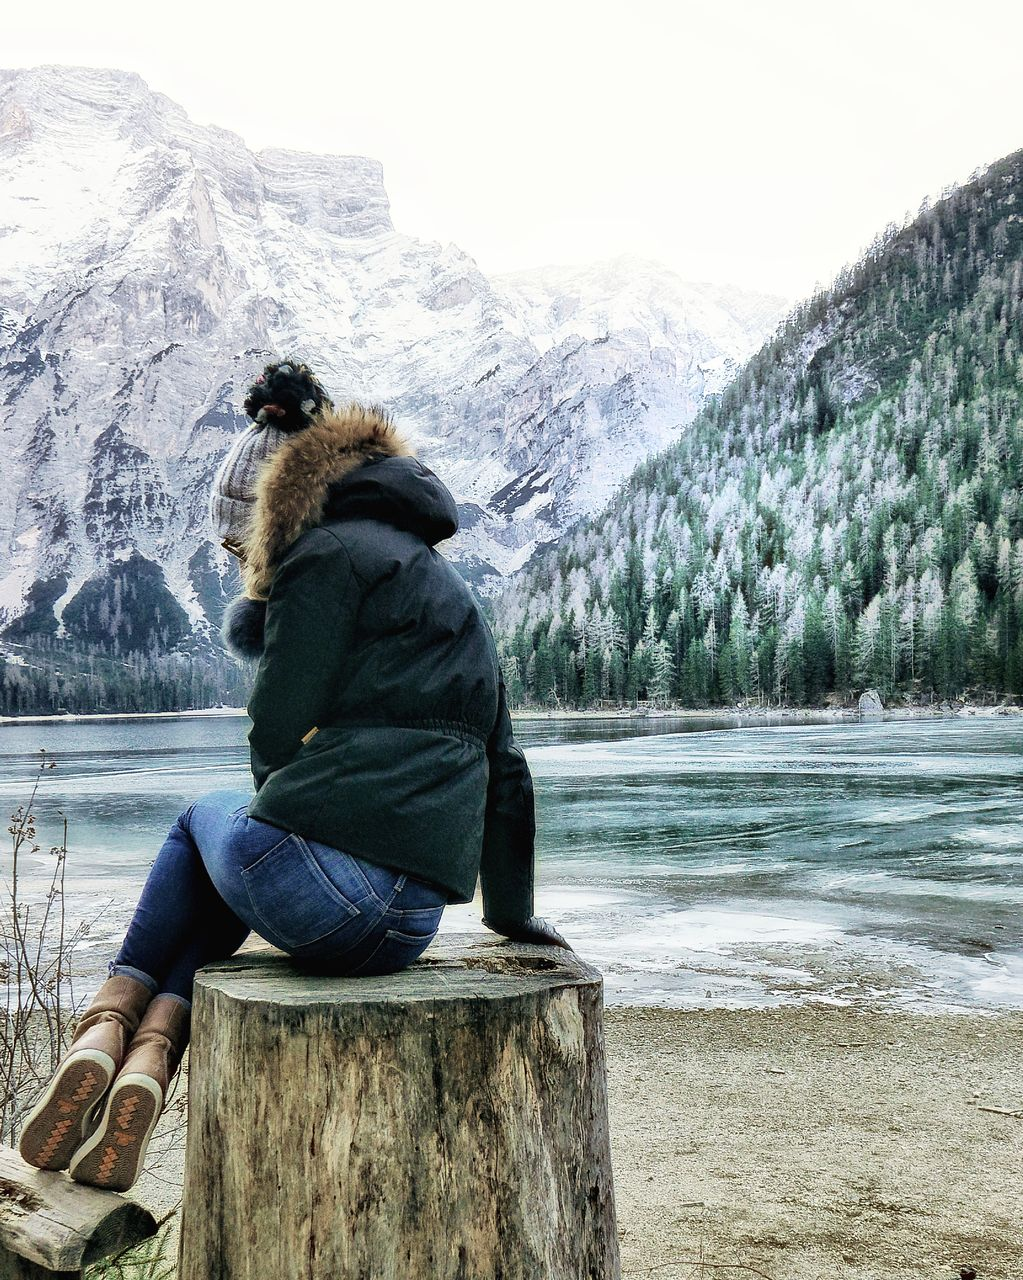 sitting, mountain, snow, nature, winter, day, lake, cold temperature, beauty in nature, one person, leisure activity, water, full length, outdoors, warm clothing, scenics, real people, vacations, tree, young adult, sky, people